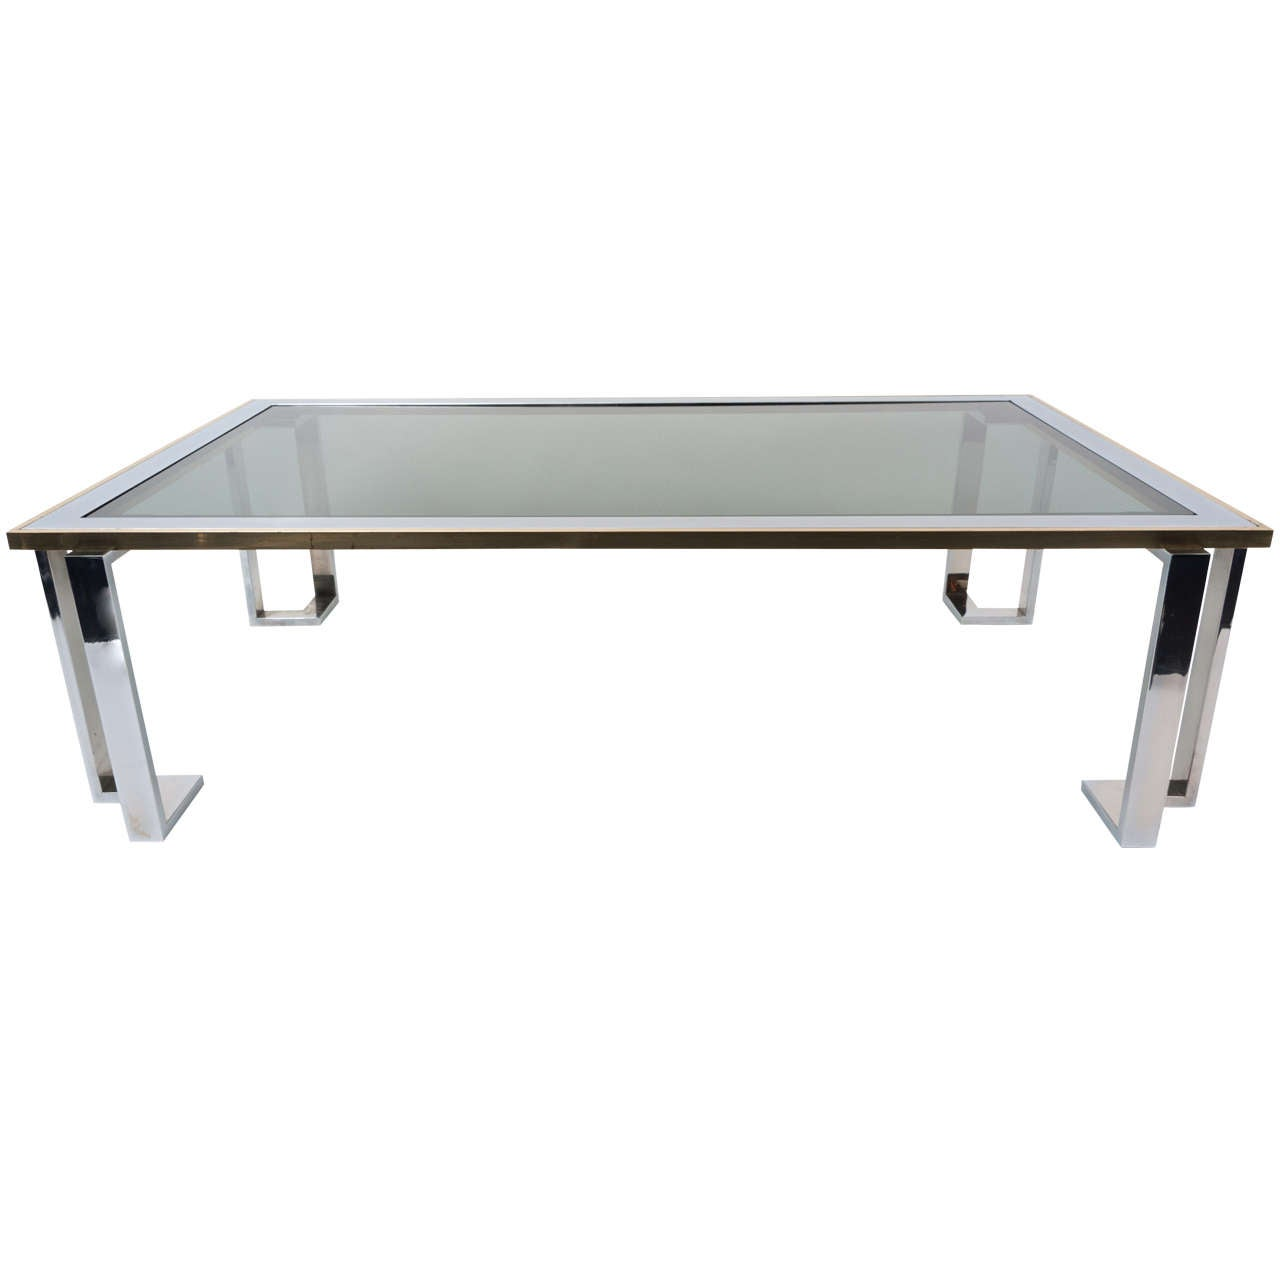 Romeo Rega Glass And Chrome Coffee Table With Smoked Glass